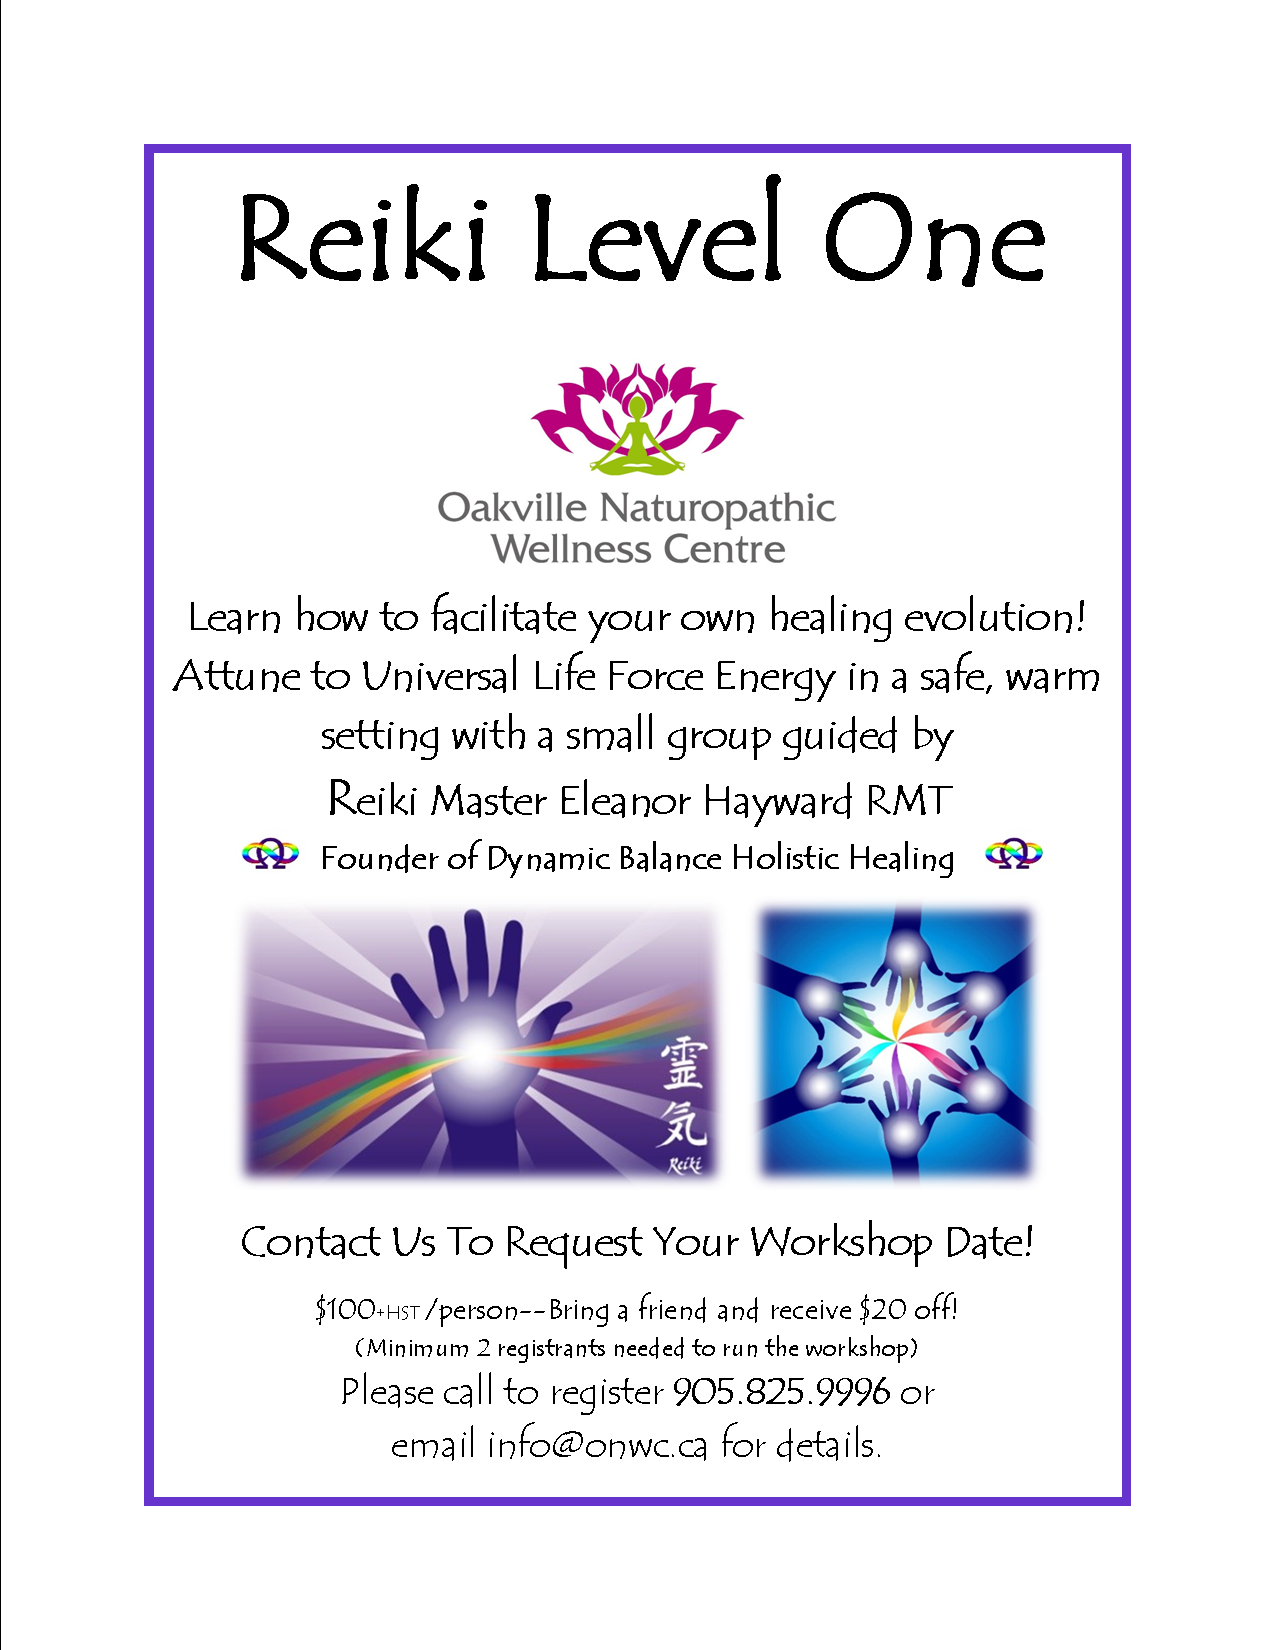 Reiki flyer request a date